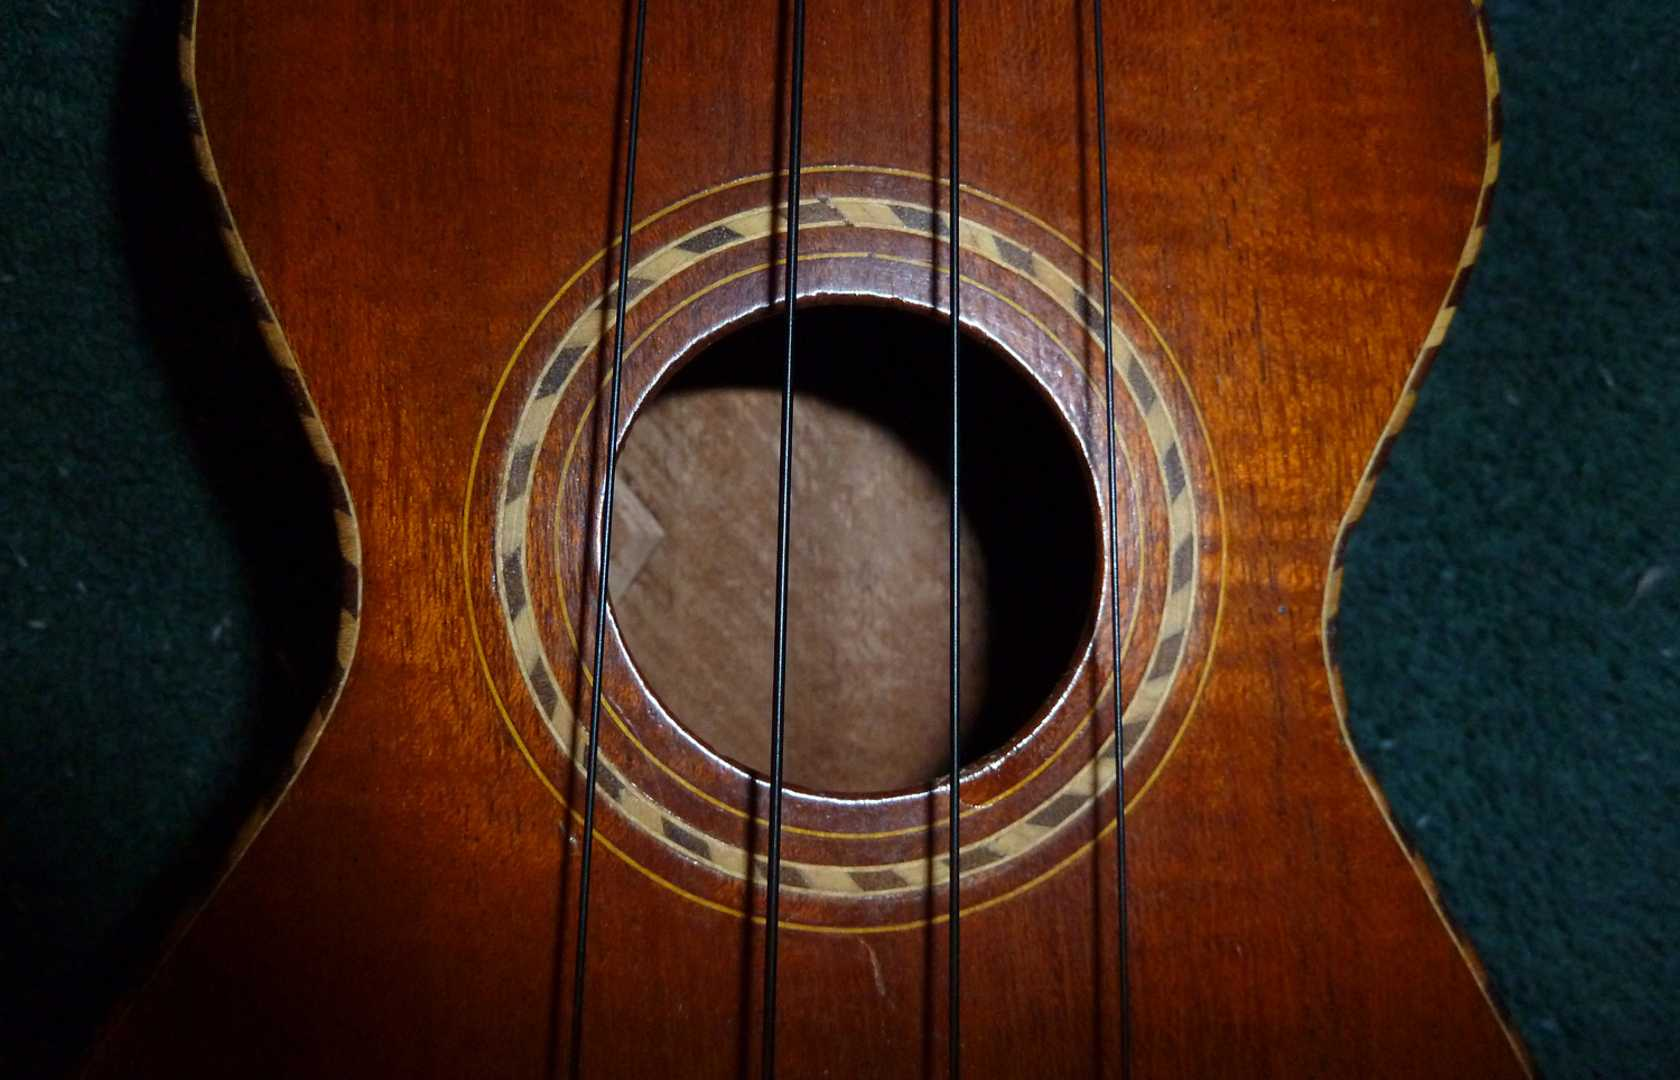 Tabs Chords Sheet Music Pearltrees